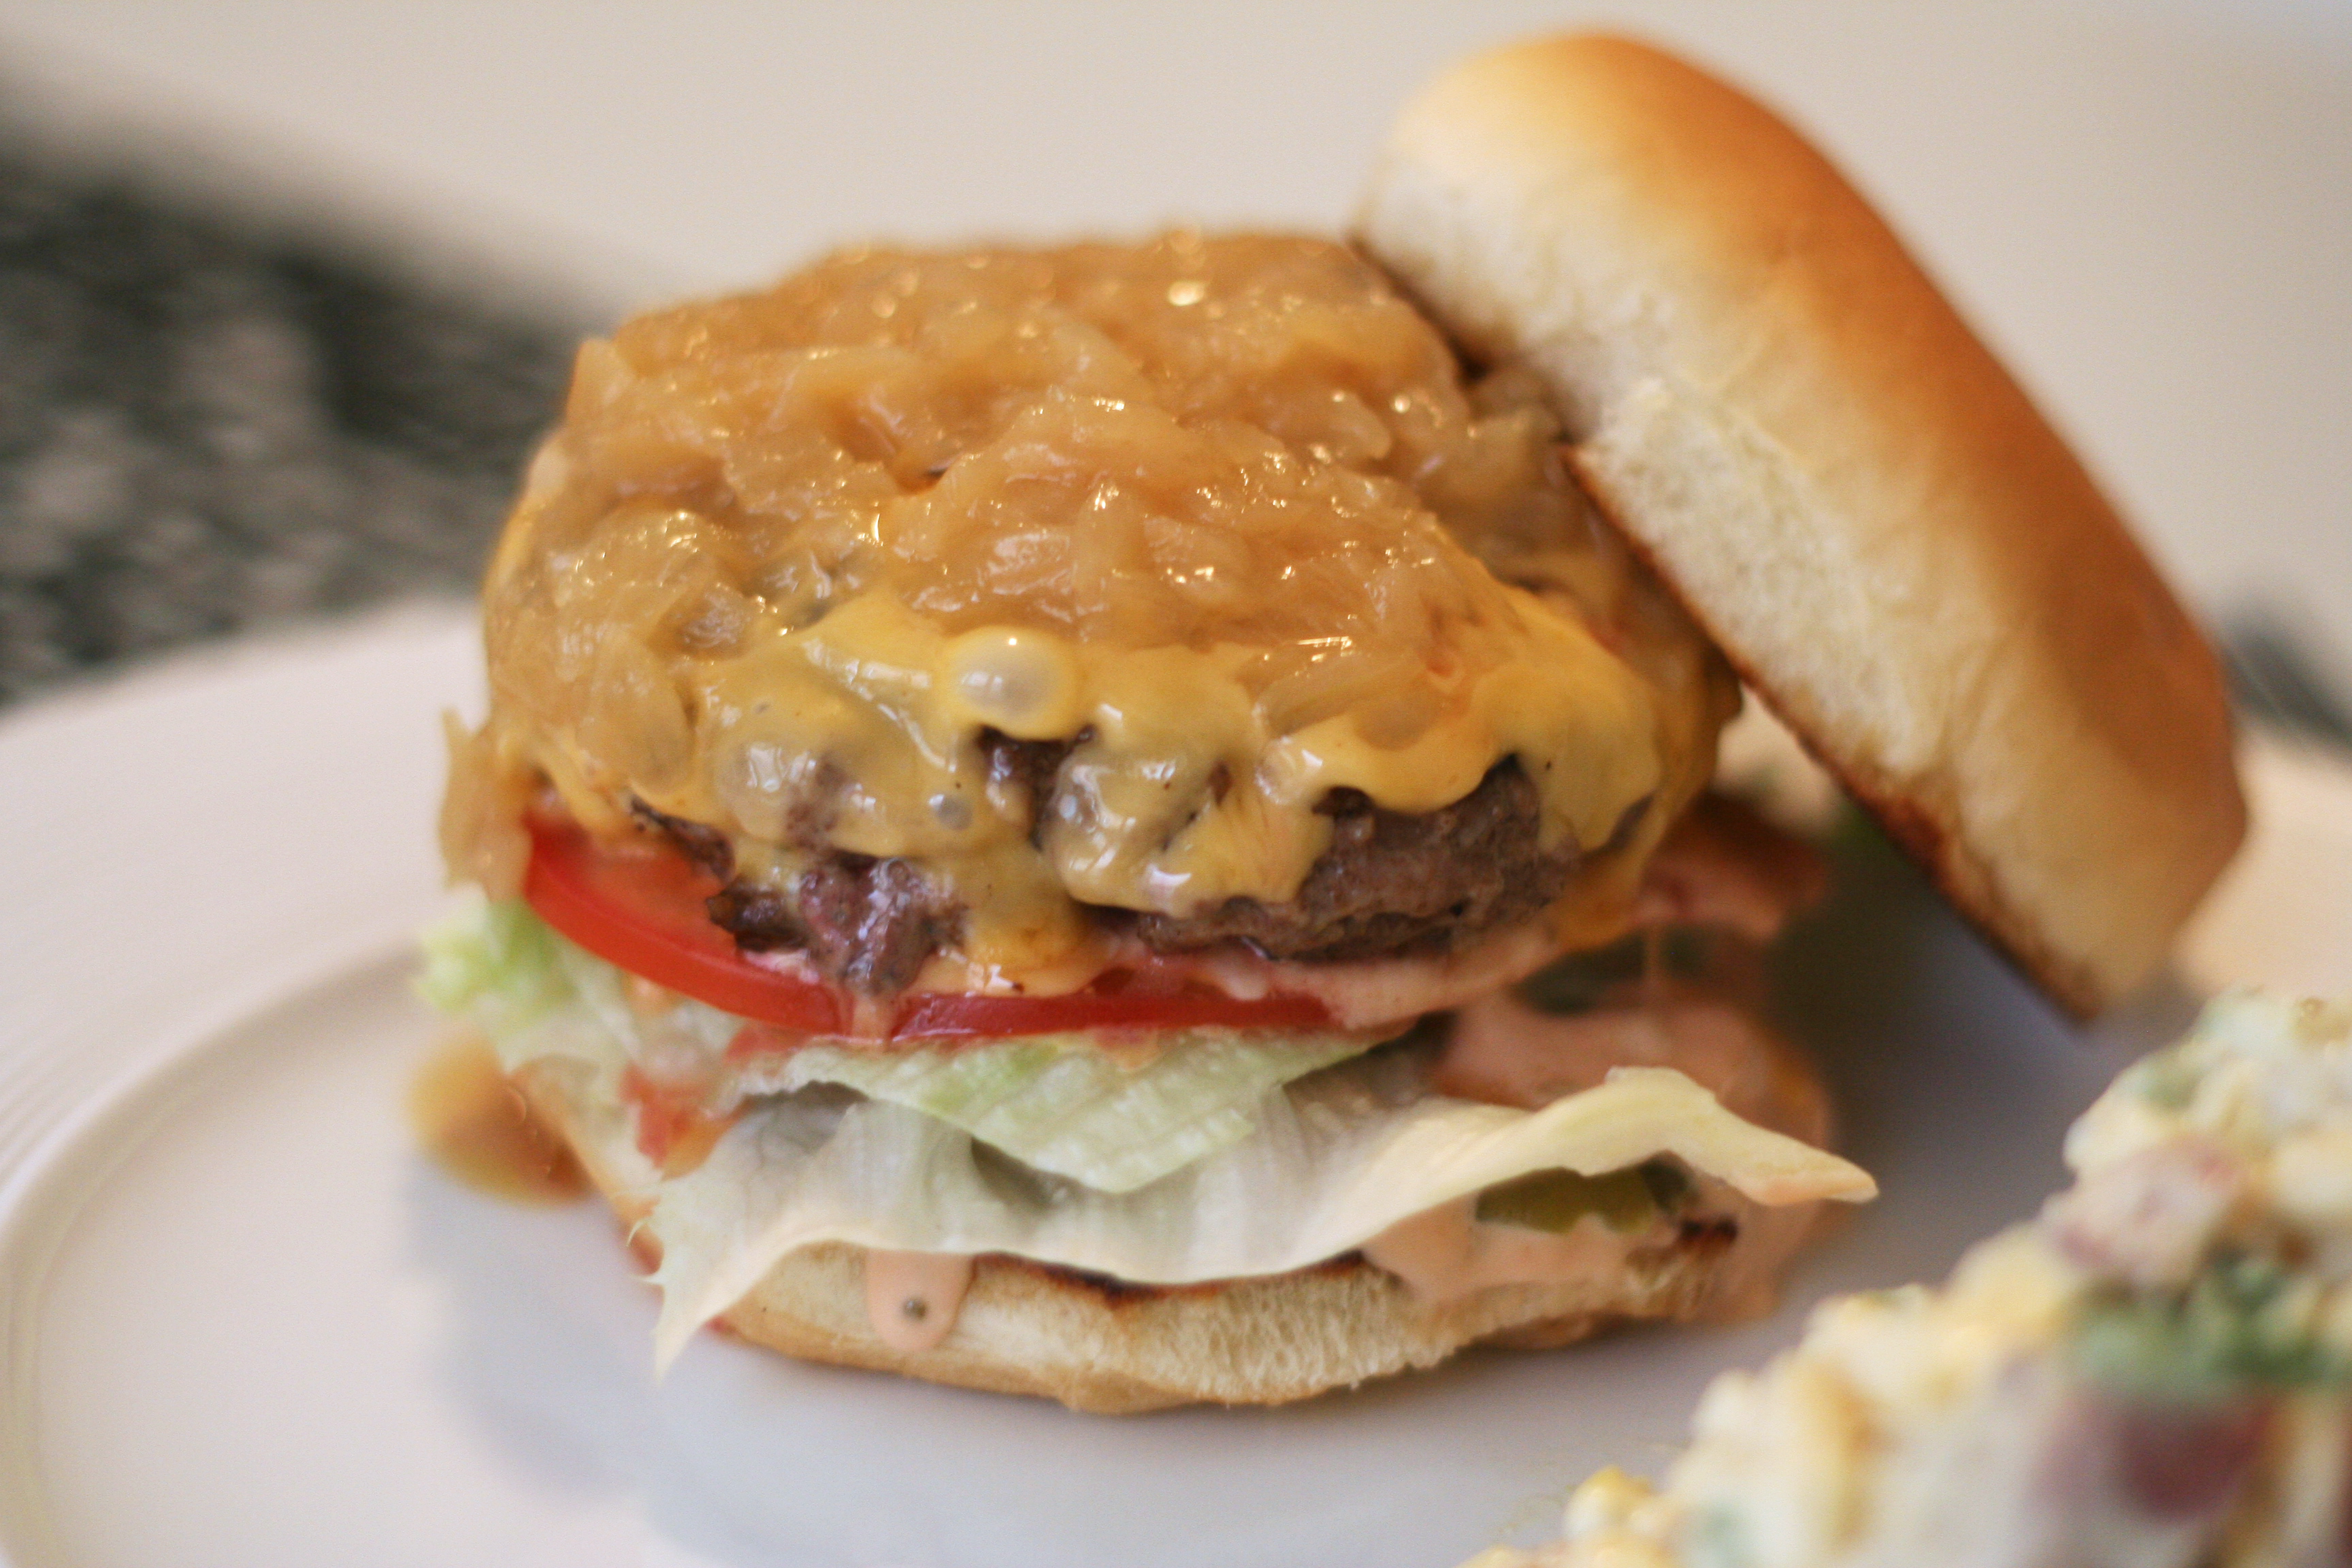 in-n-out animal style cheeseburger